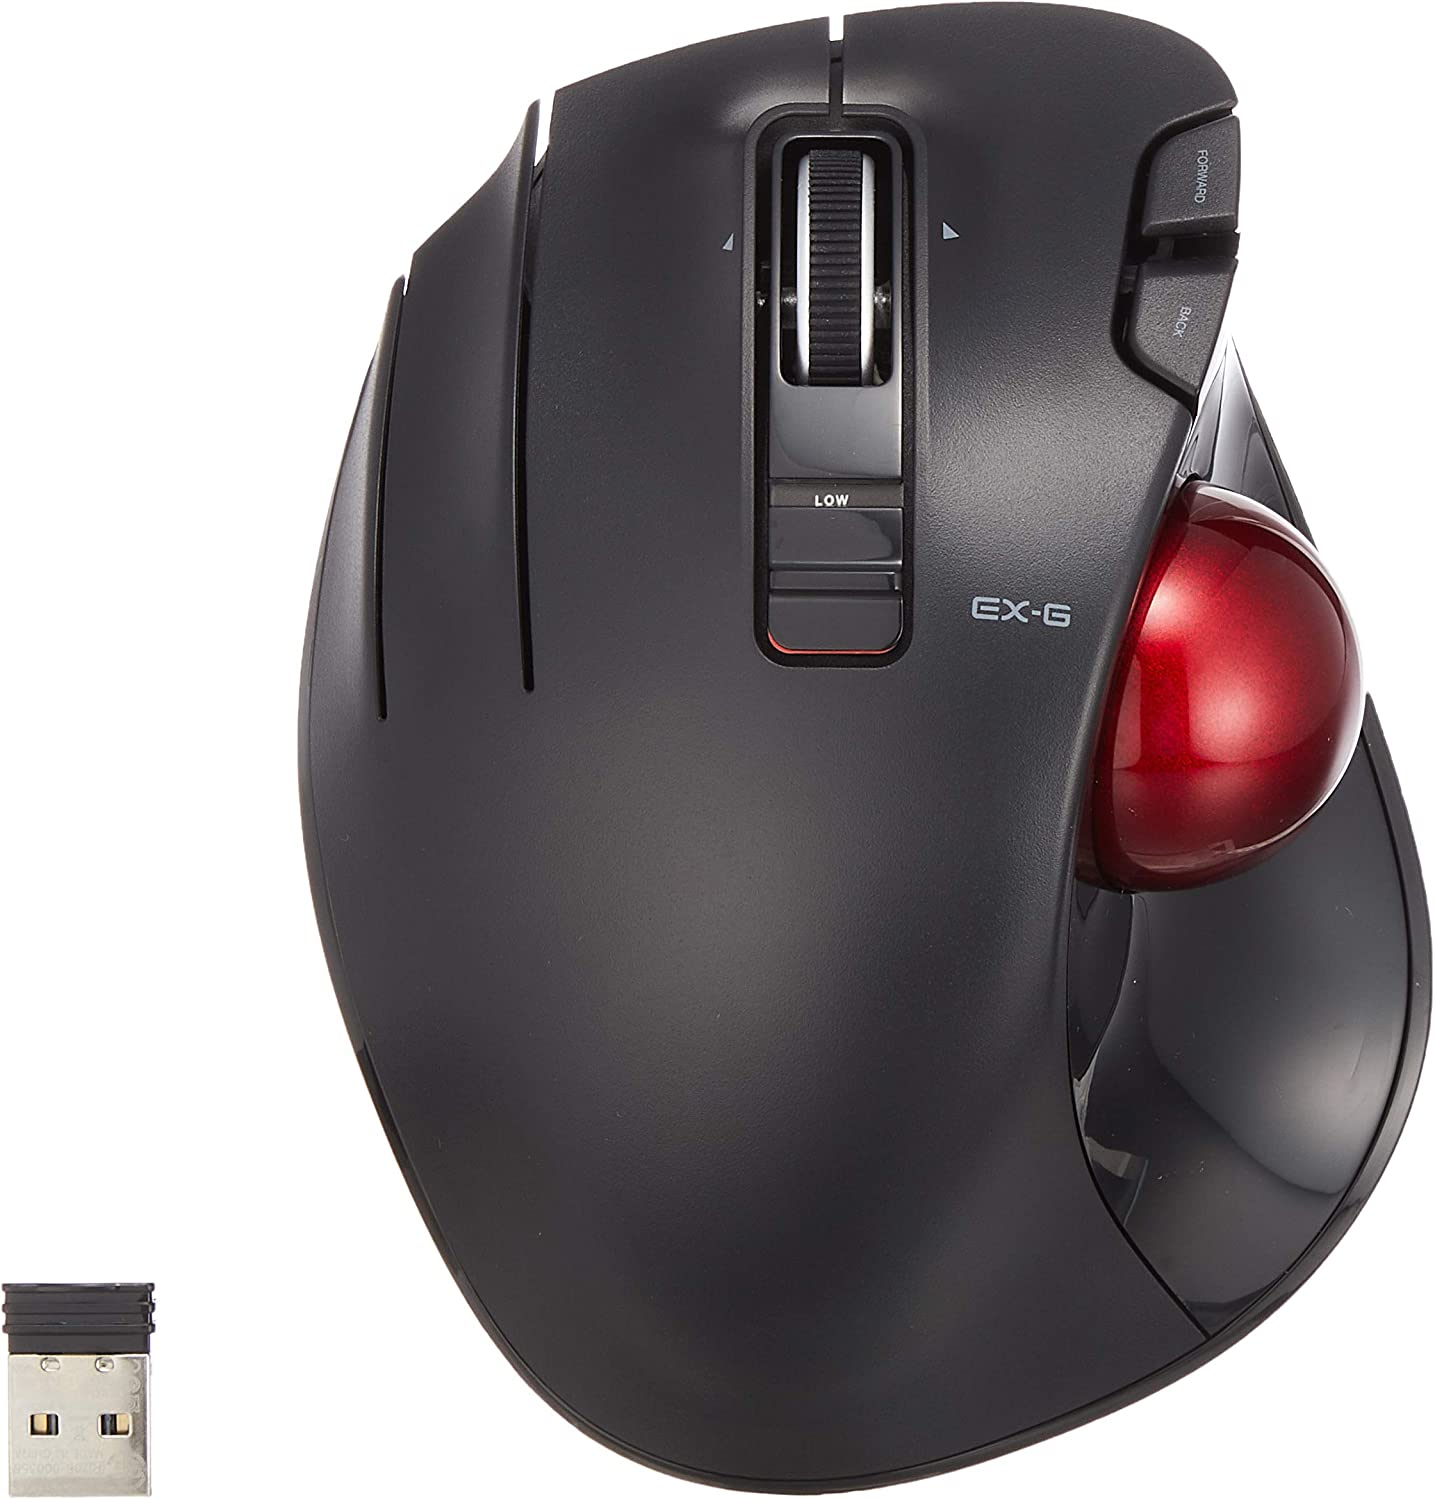 M-XT4DRBK-G 6-Button Function with Smooth Tracking Precision Optical Gaming Sensor ELECOM Left-Handed Wireless Thumb-Operated Trackball Mouse